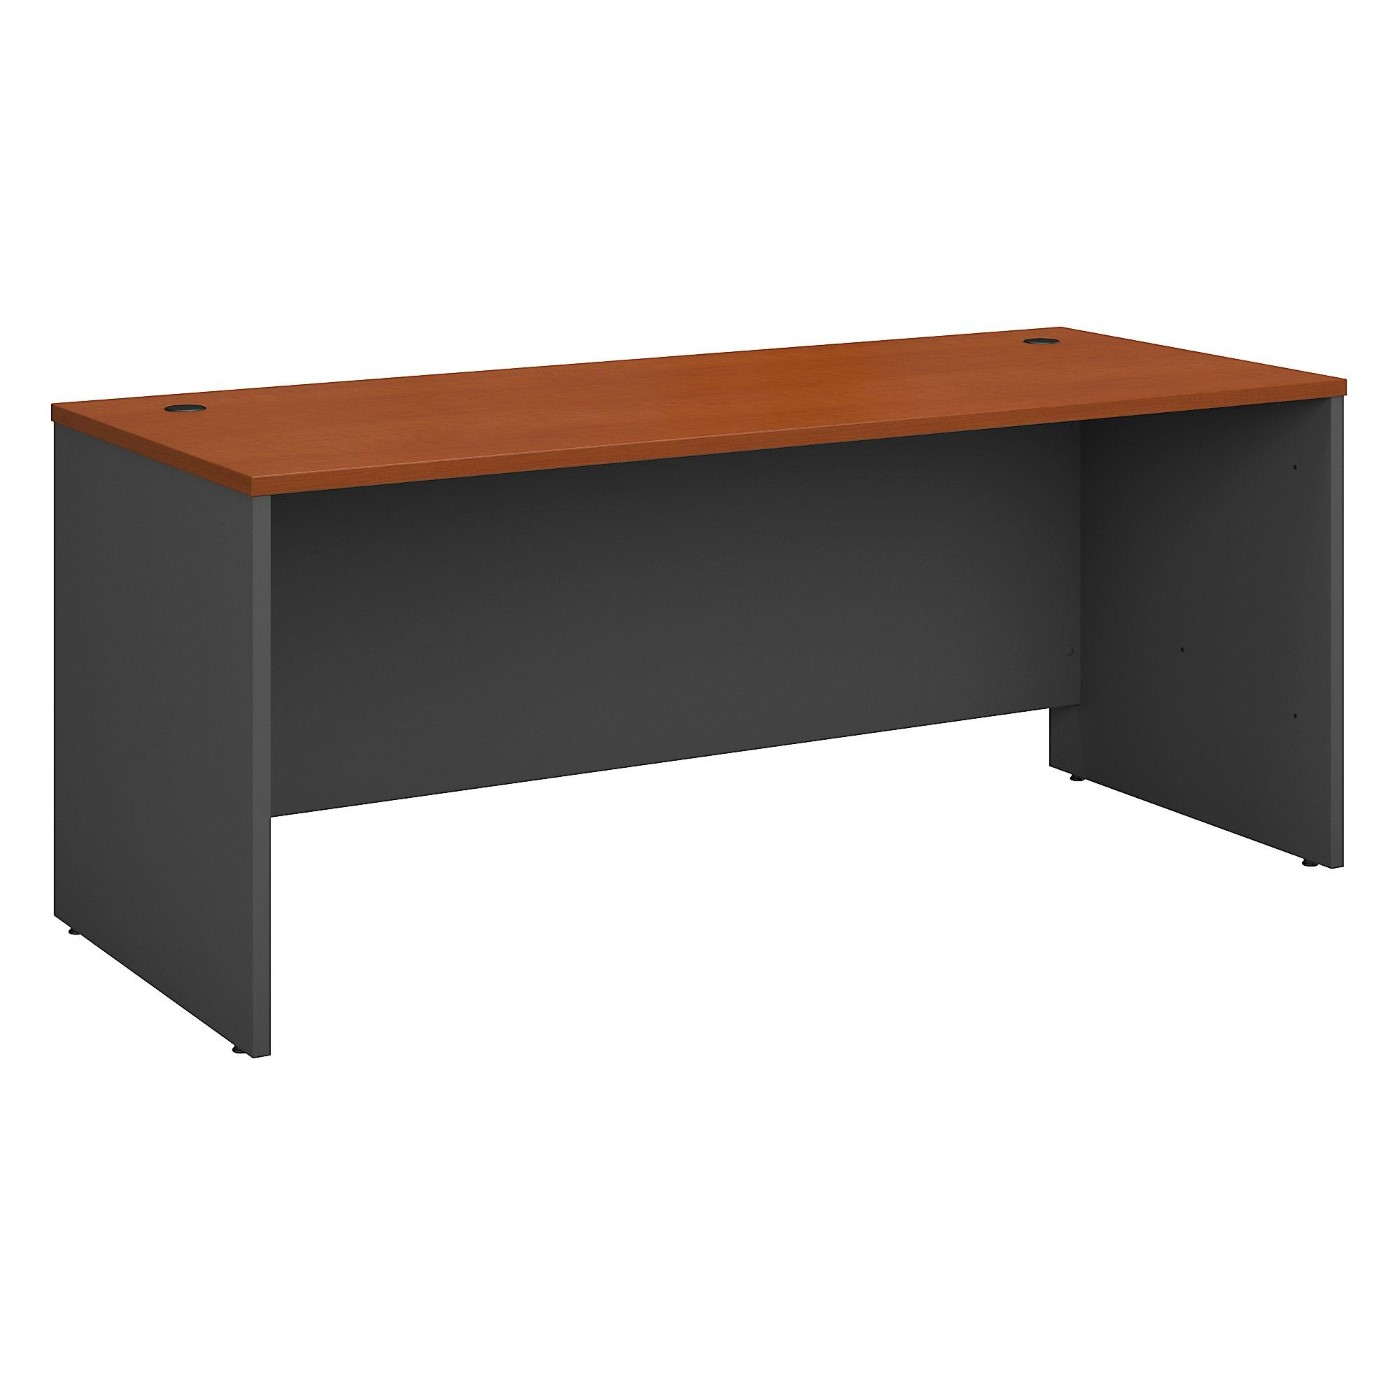 BUSH BUSINESS FURNITURE SERIES C 72W X 30D OFFICE DESK. FREE SHIPPING</font></b></font>&#x1F384<font color=red><b>ERGONOMICHOME HOLIDAY SALE - ENDS DEC. 17, 2019</b></font>&#x1F384